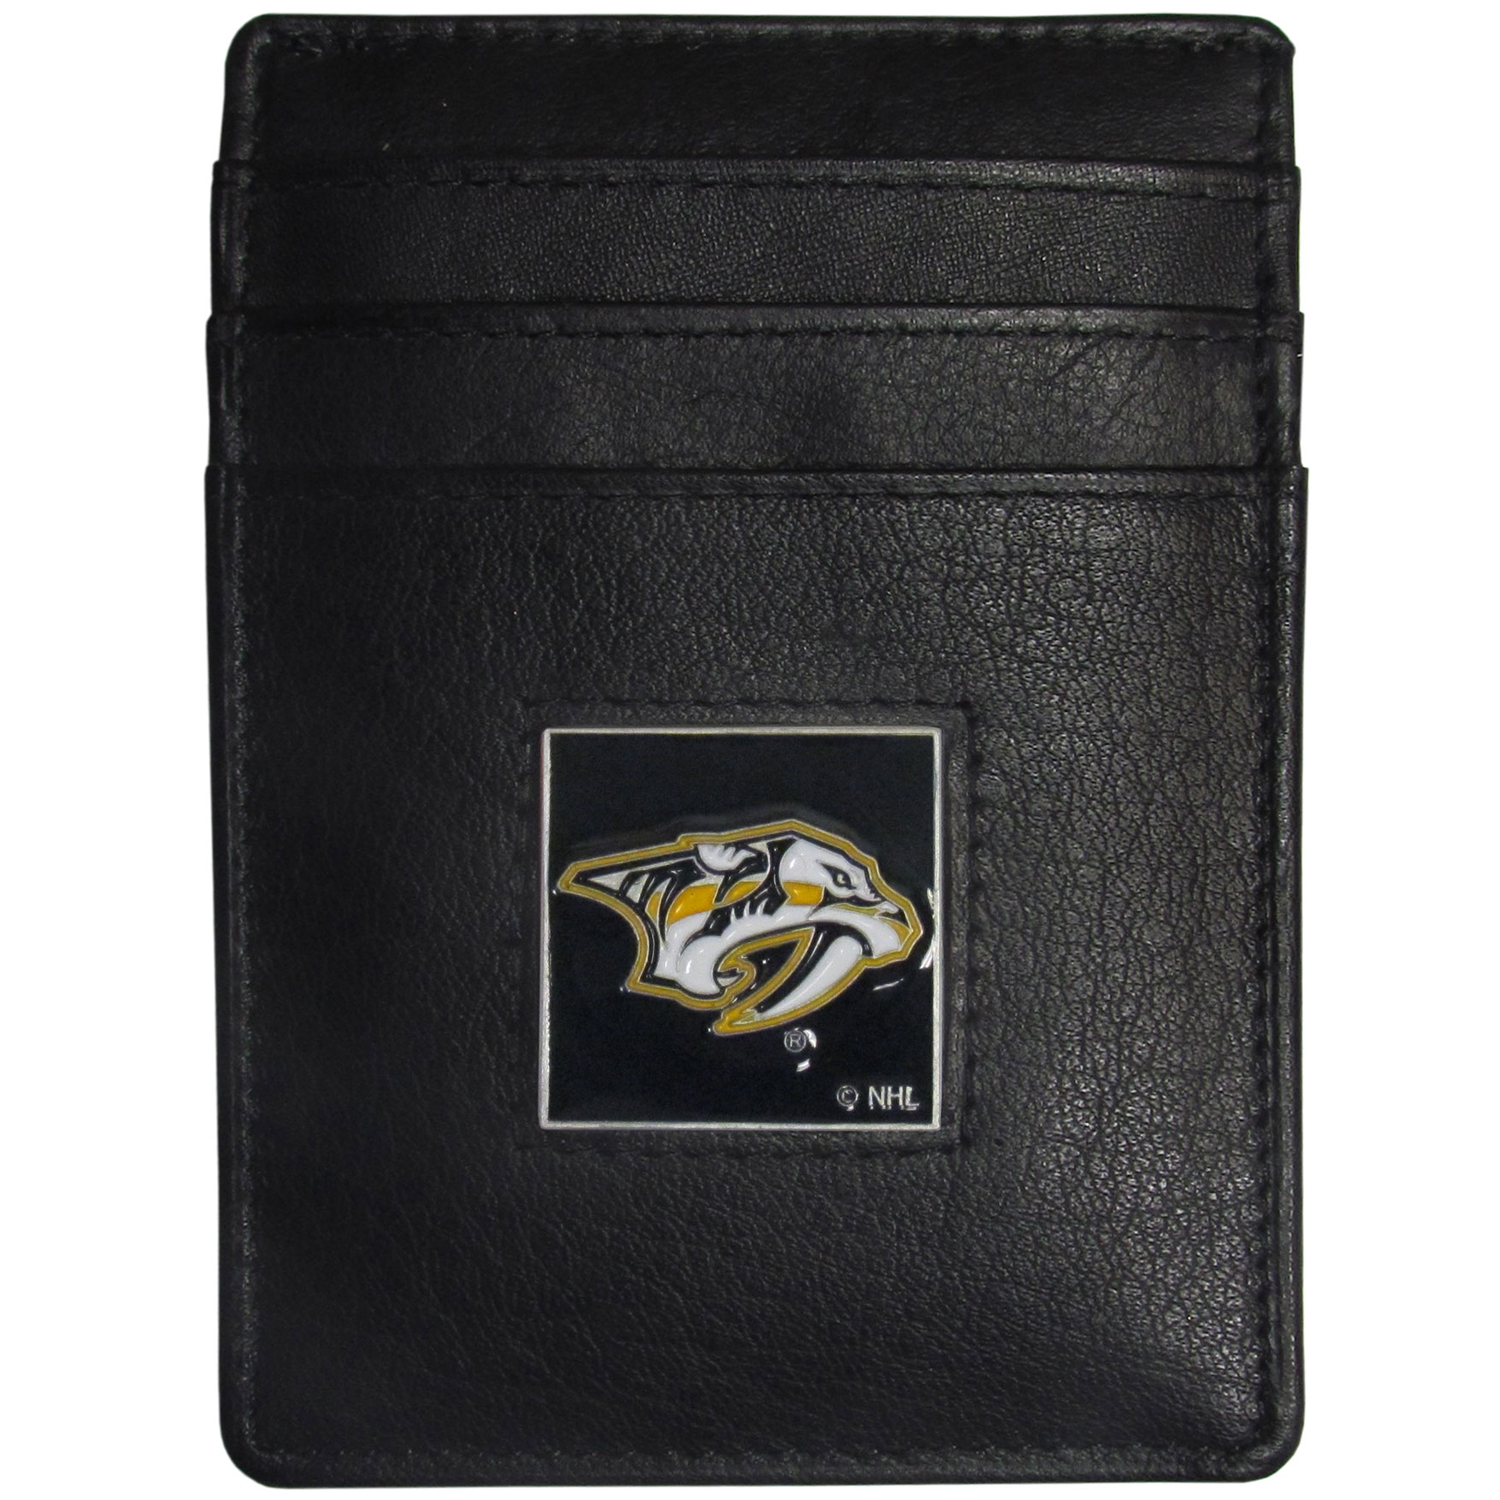 Nashville Predators® Leather Money Clip/Cardholder - Our officially licensed Money Clip/Card Holders won't make you choose between paper or plastic because they stow both easily. Features our sculpted and enameled Nashville Predators® emblem on the front of the wallet.